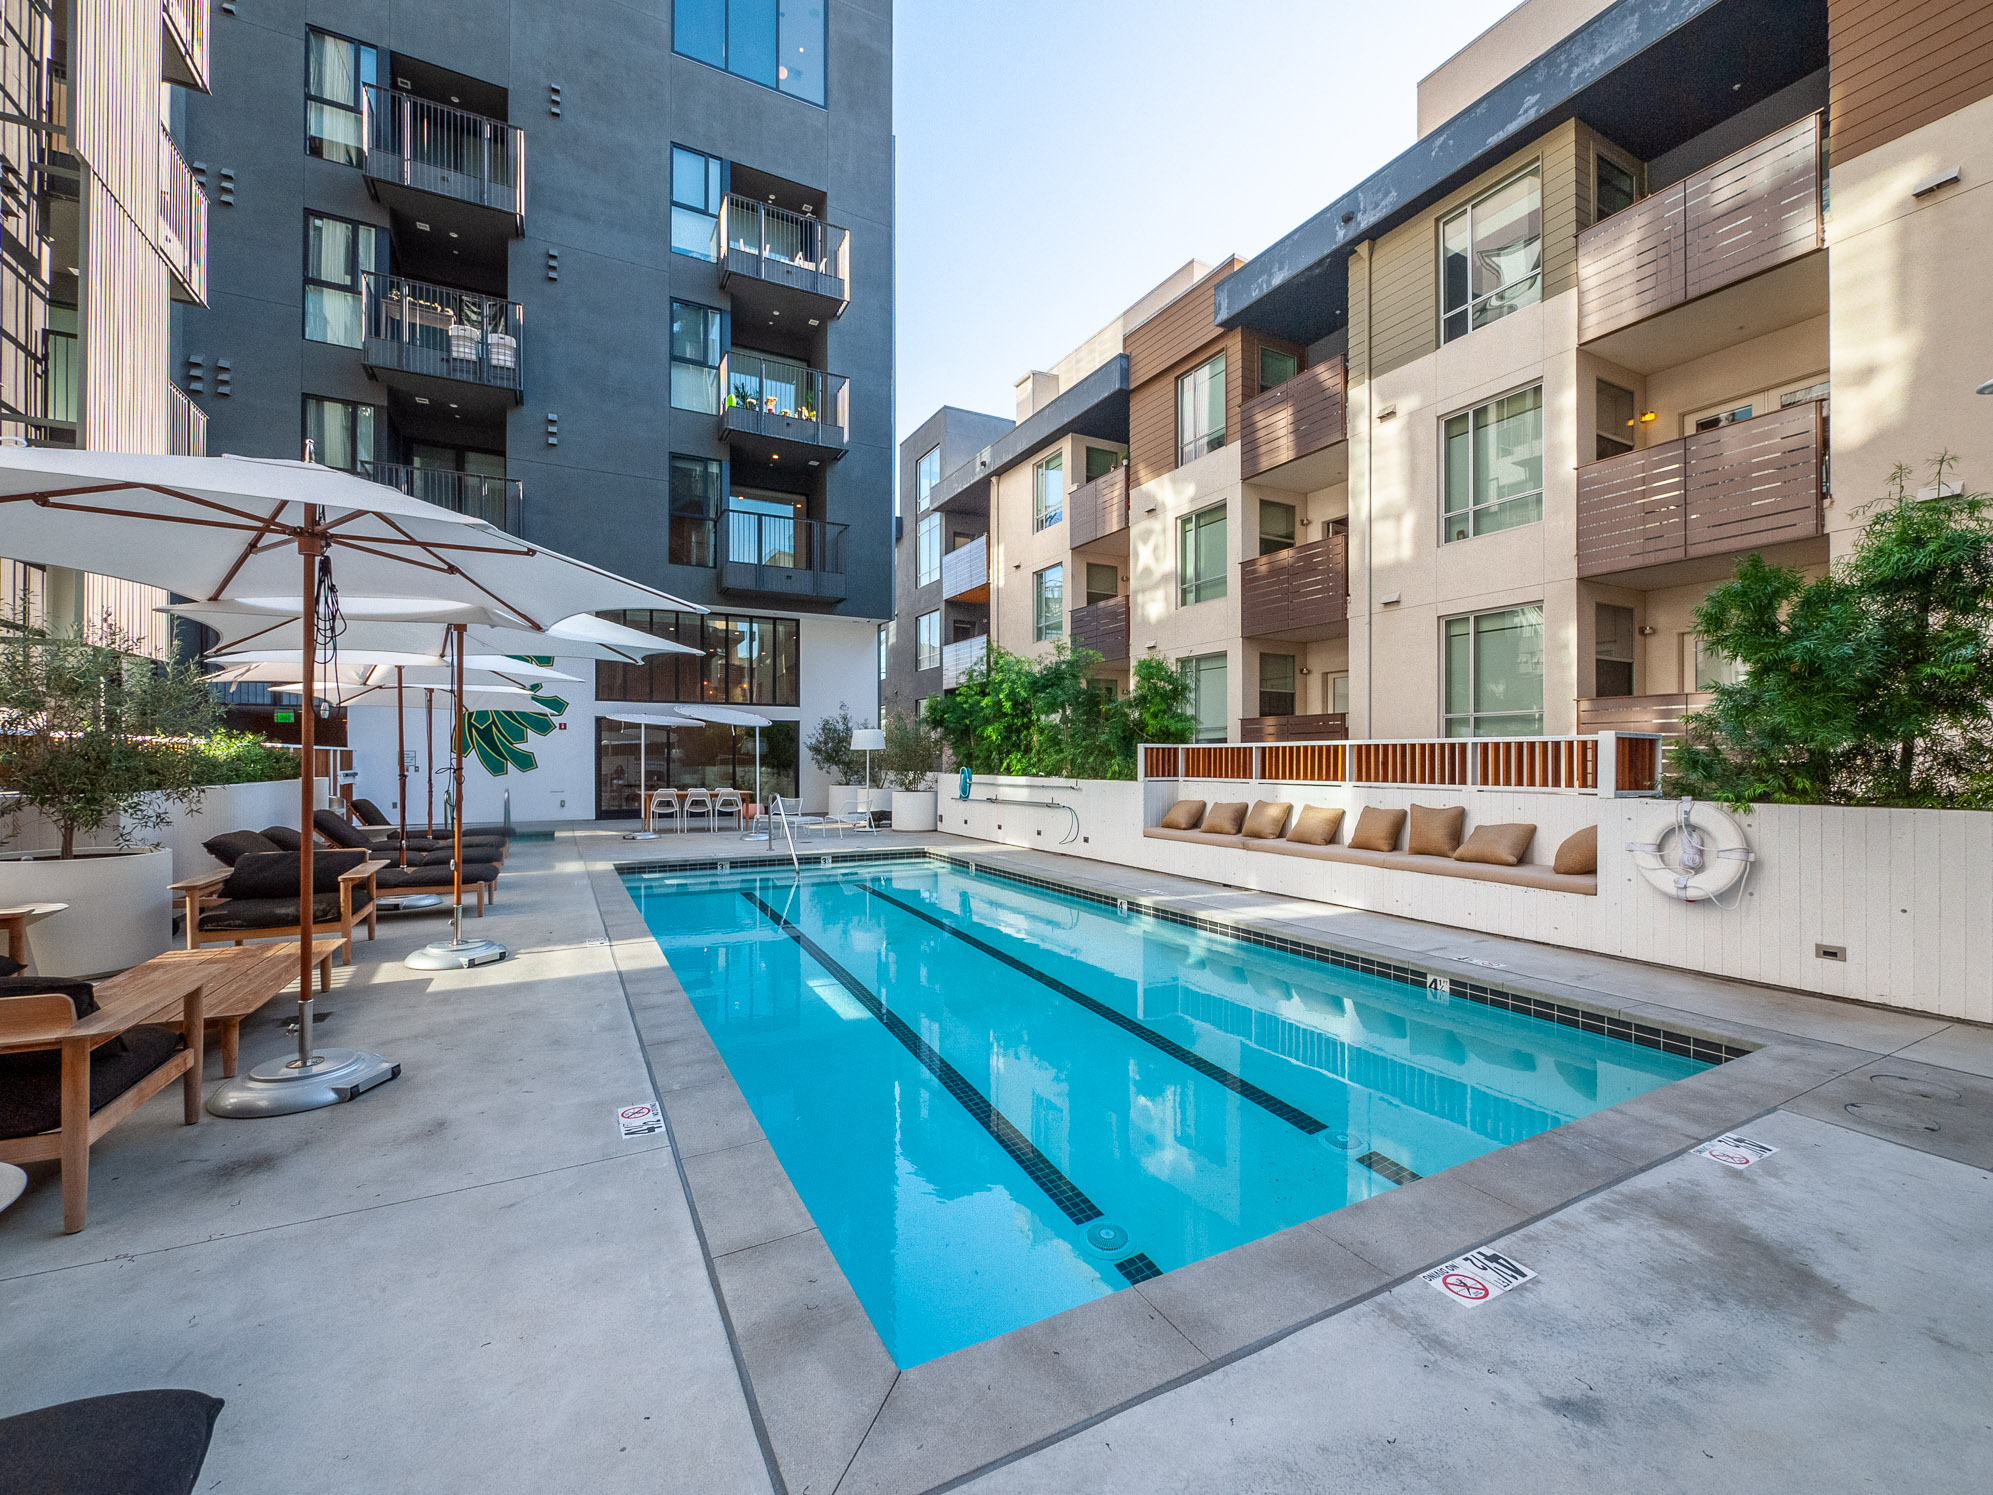 Hollywood architectural apartment at The Line Lofts: Interior Pool View with Large Balcony!